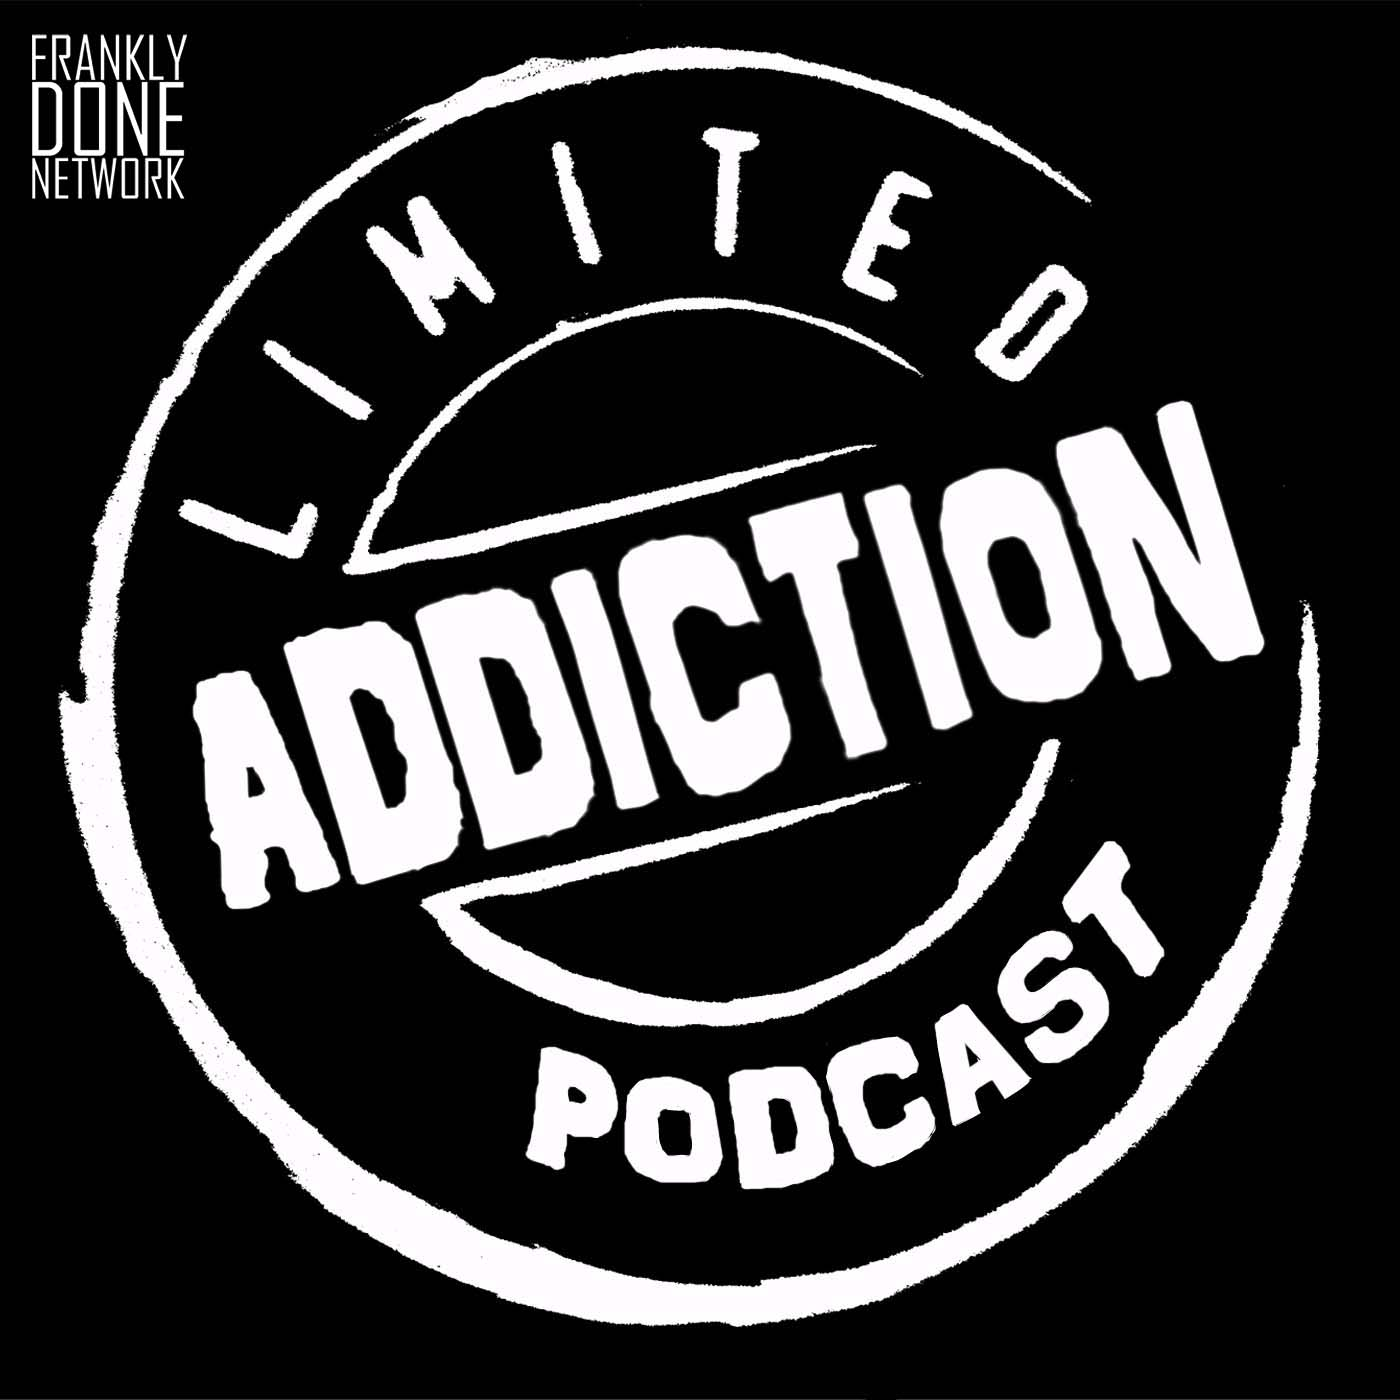 Limited Addiction Podcast